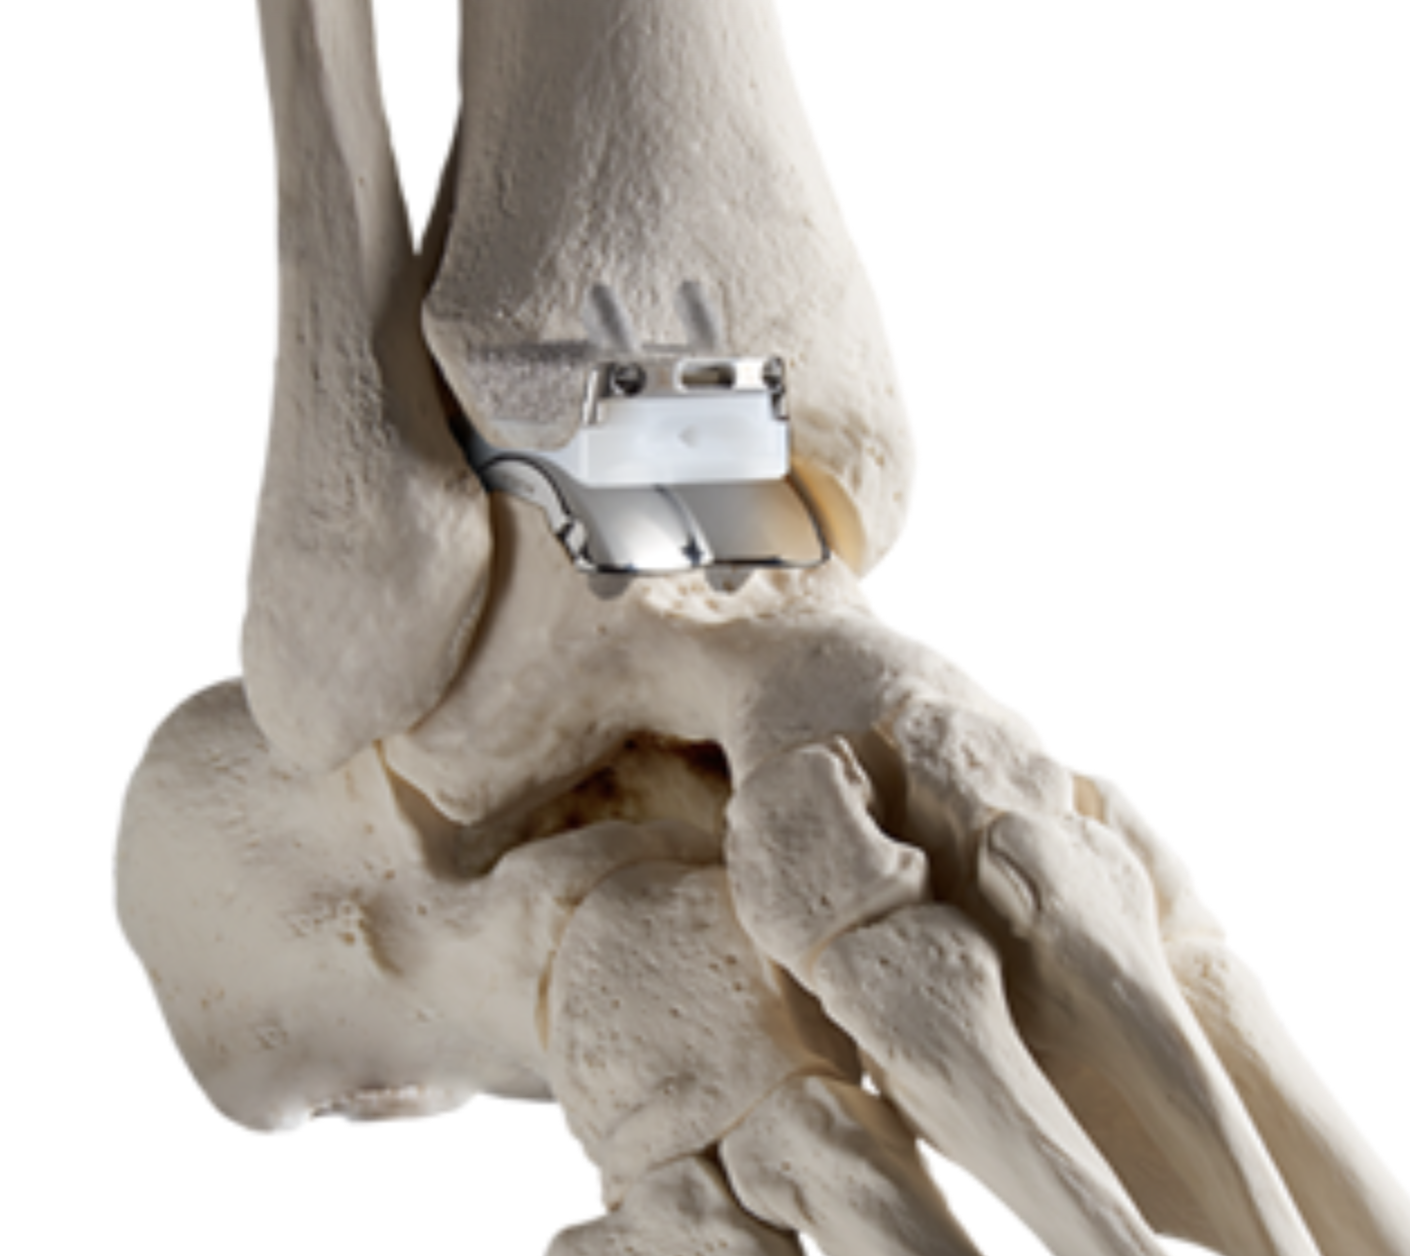 Infinity Ankle - Infinity ankle replacement shown in a model skeleton. The implants replace both tibia and talus articular surfaces and have a high density polyethylene articulating spacer between the two metal surfaces.